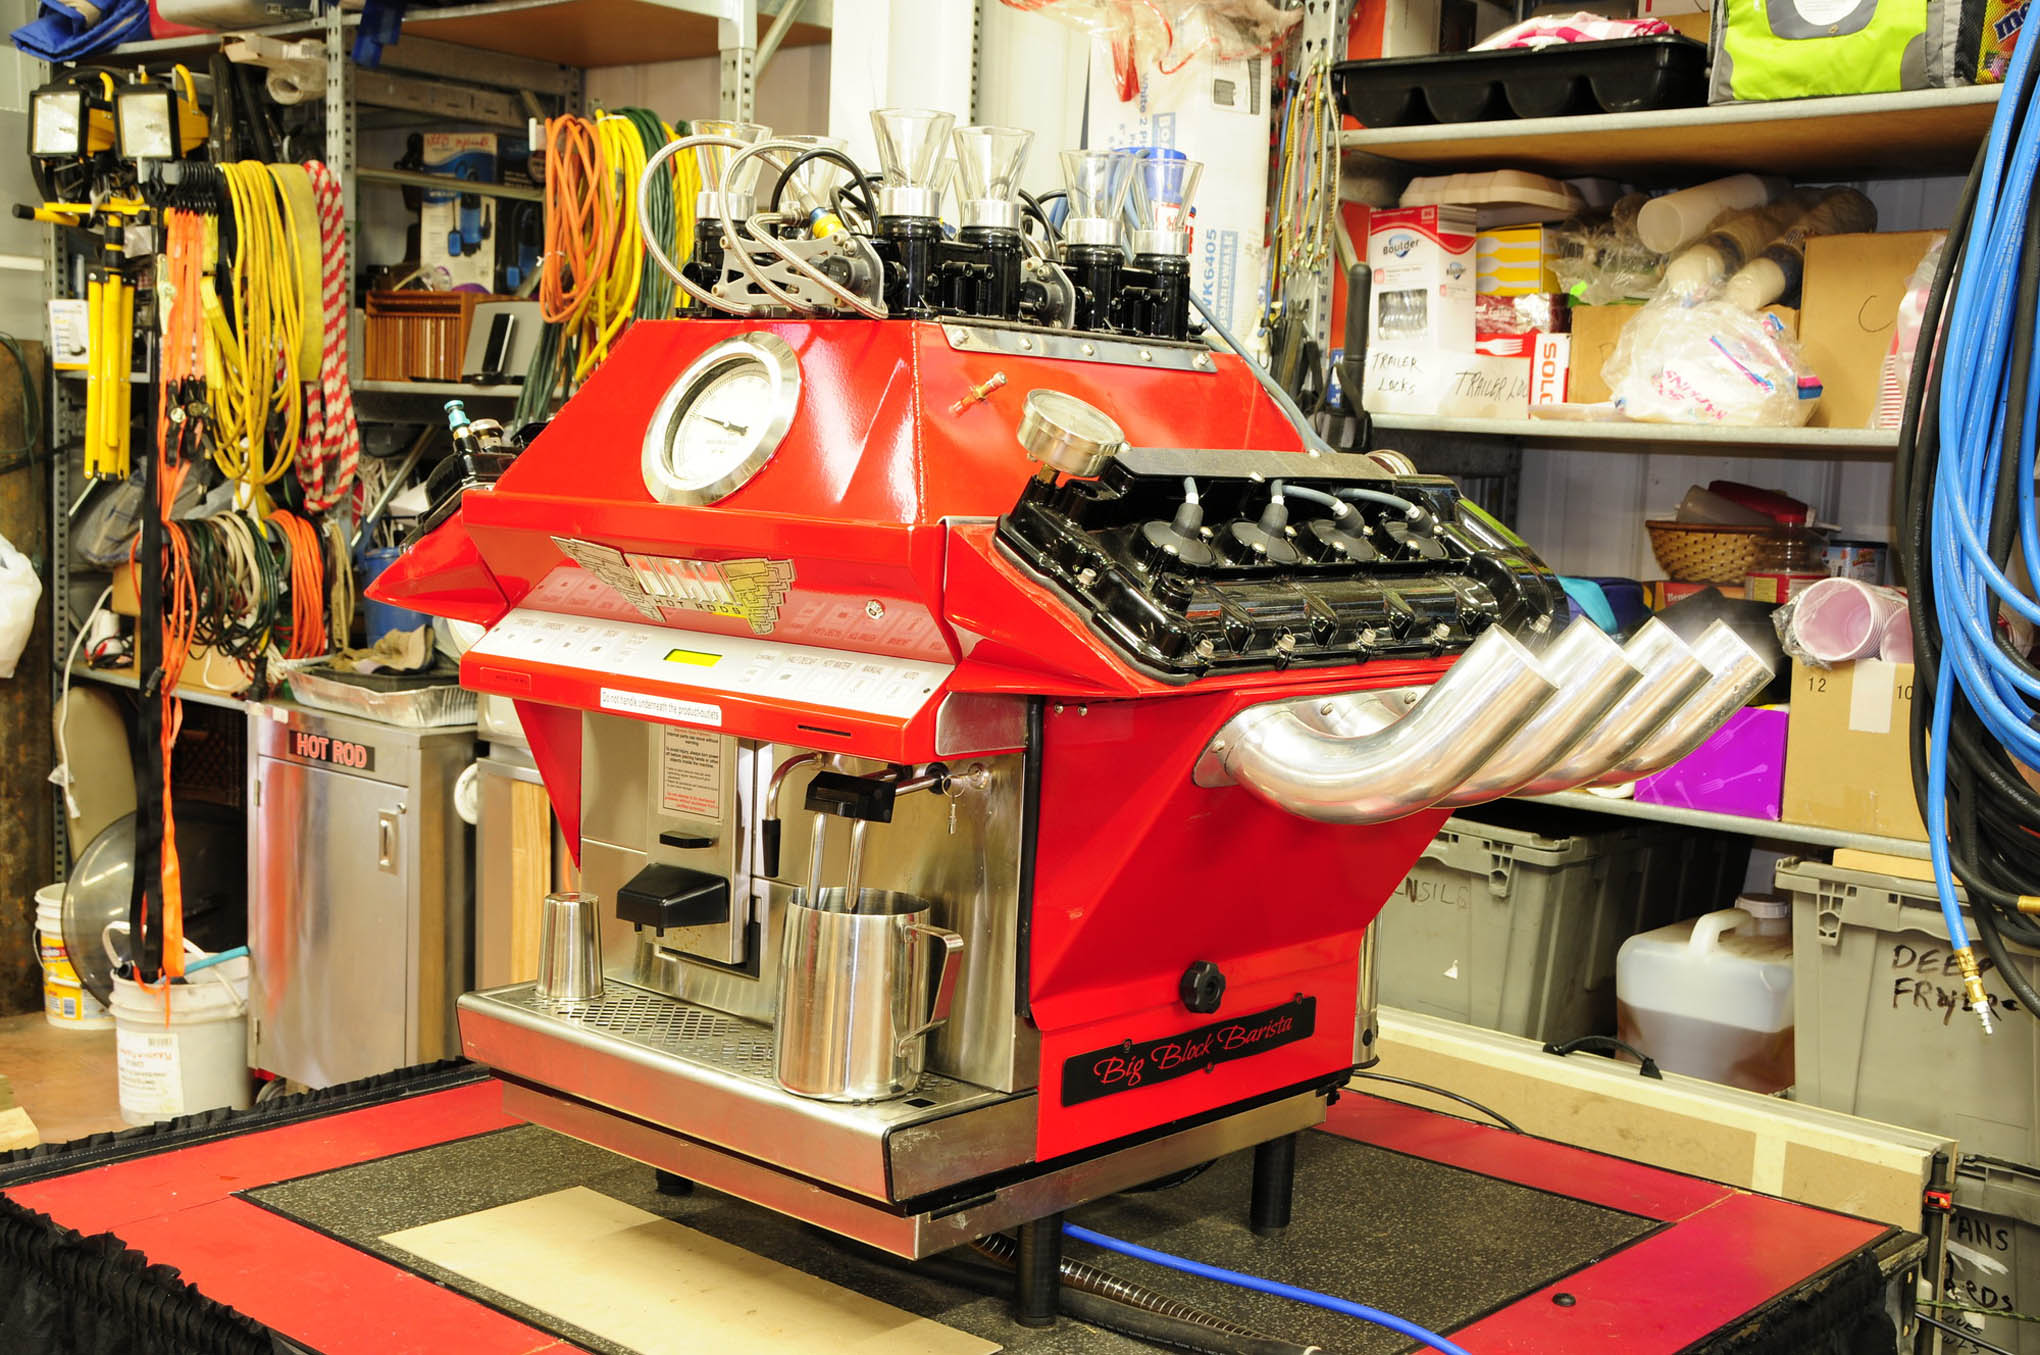 Tucci Sr., forever the innovator, came up with this killer big-Block Barista espresso machine … how's that for one powerful cup of coffee!